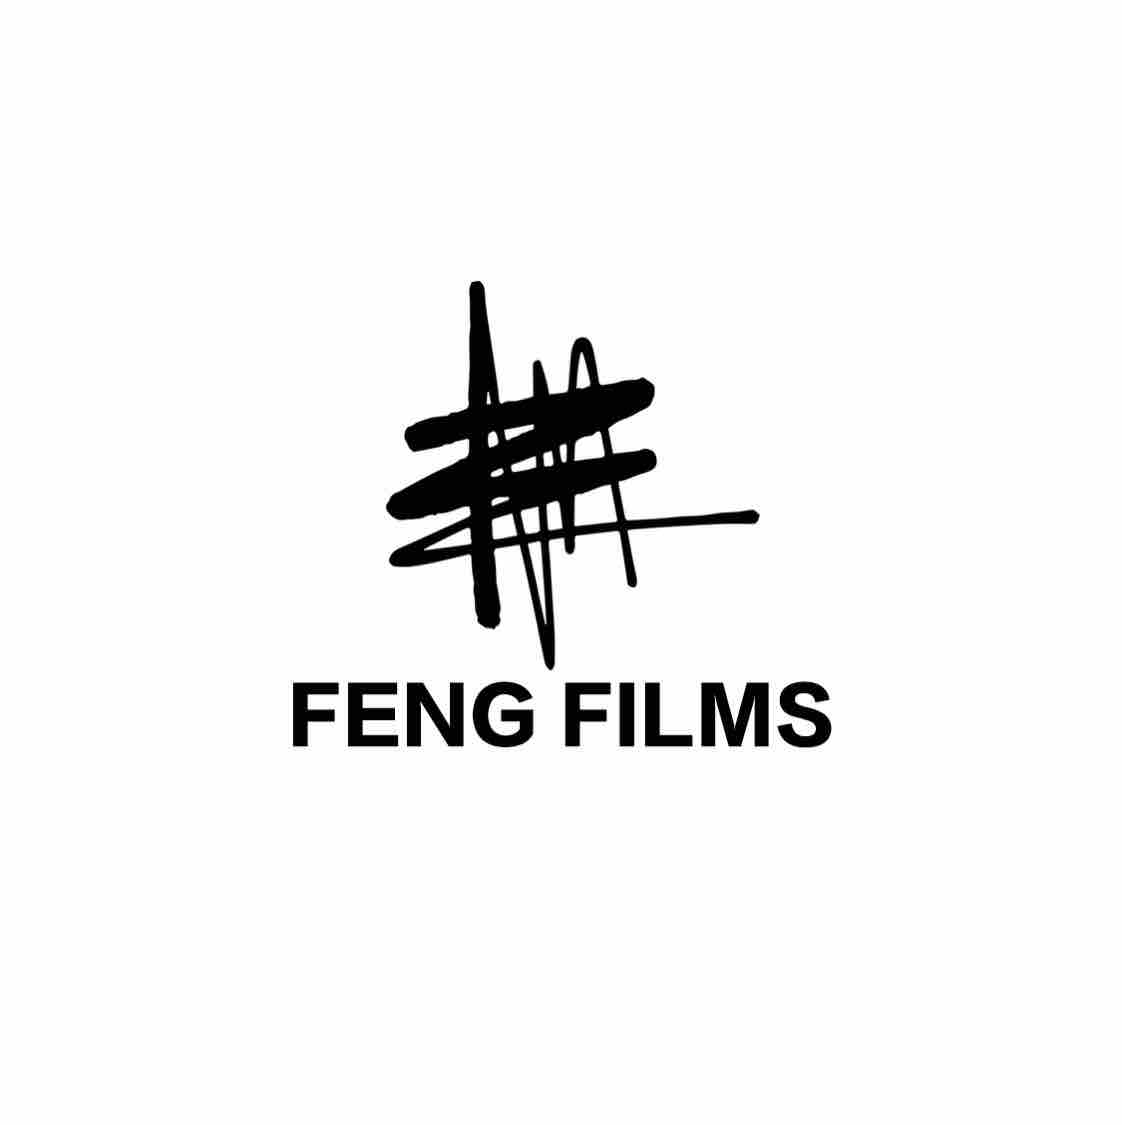 FENGFILMS